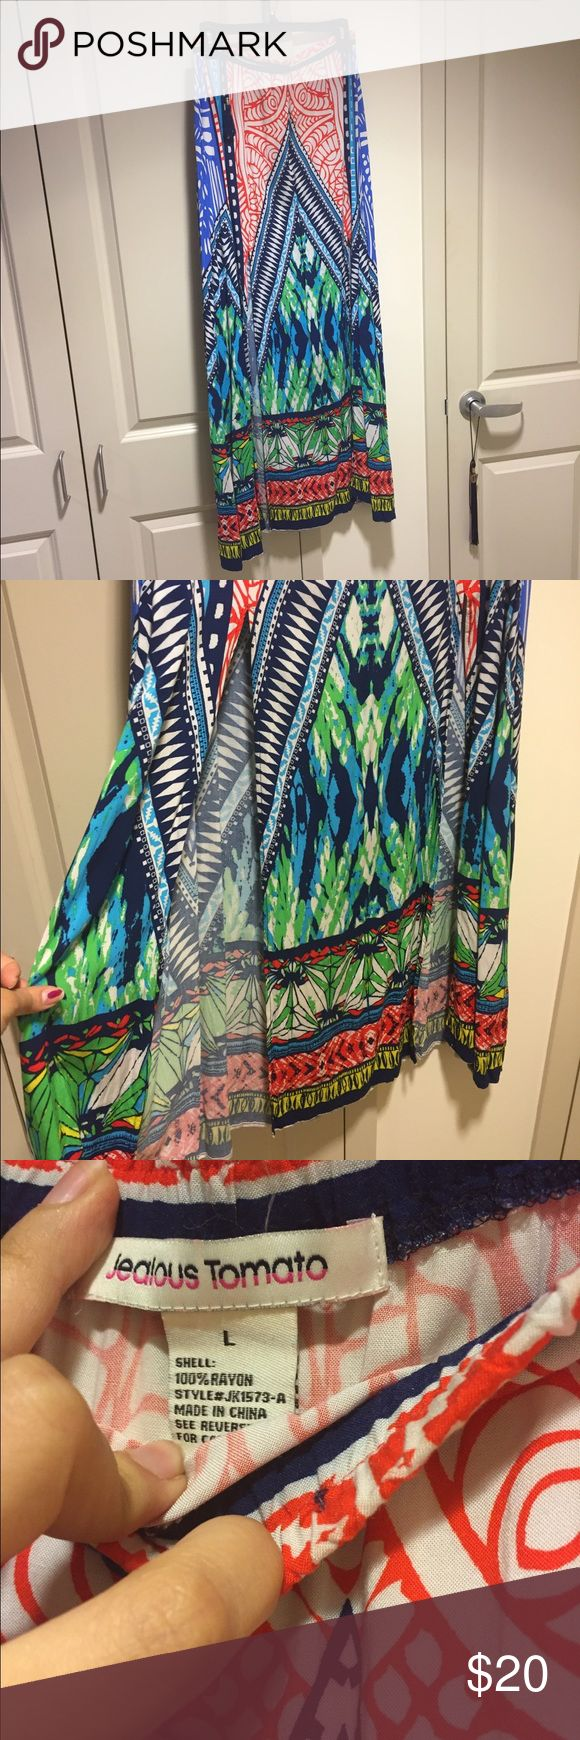 Tribal Print Maxi Only worn once. Great maxi skirt for summer or vacation. Size L. Jealous Tomato Skirts Maxi